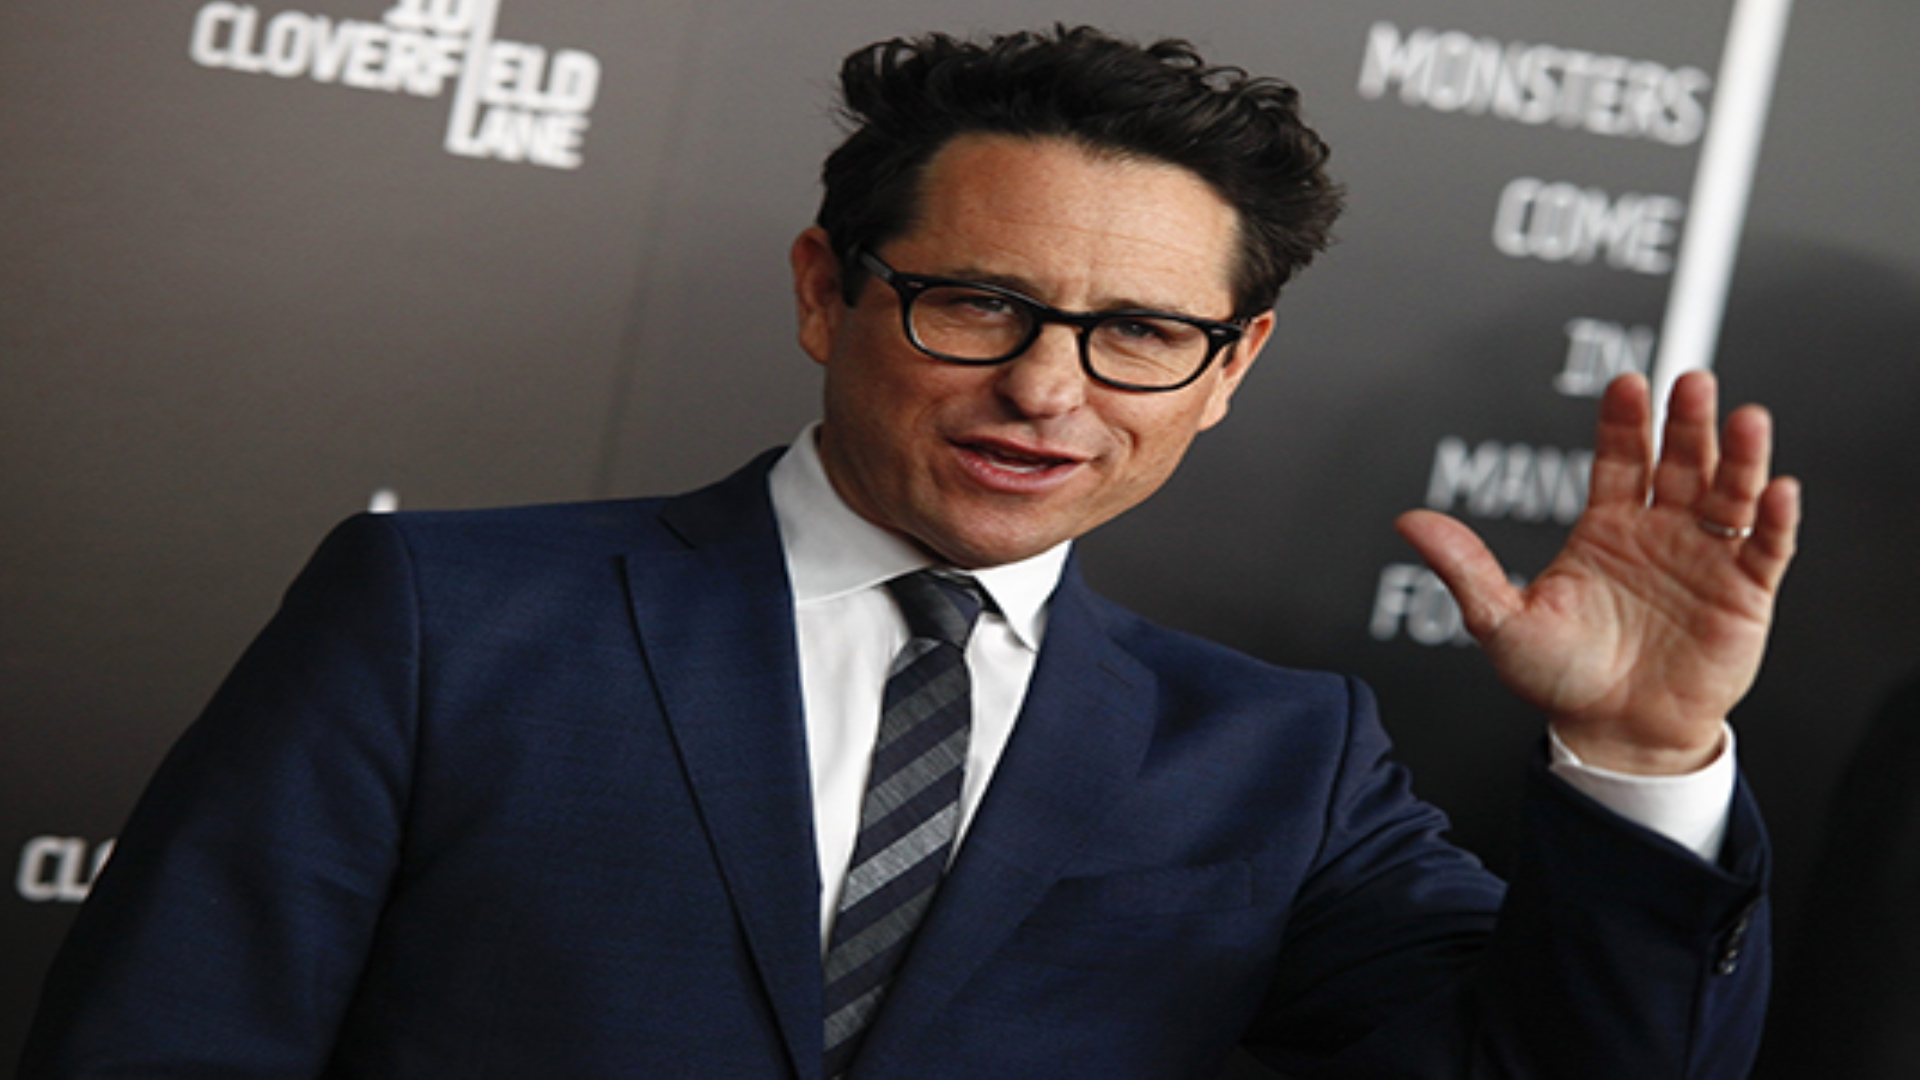 J.J. Abrams: 'Star Wars' Is About 'Inclusivity'